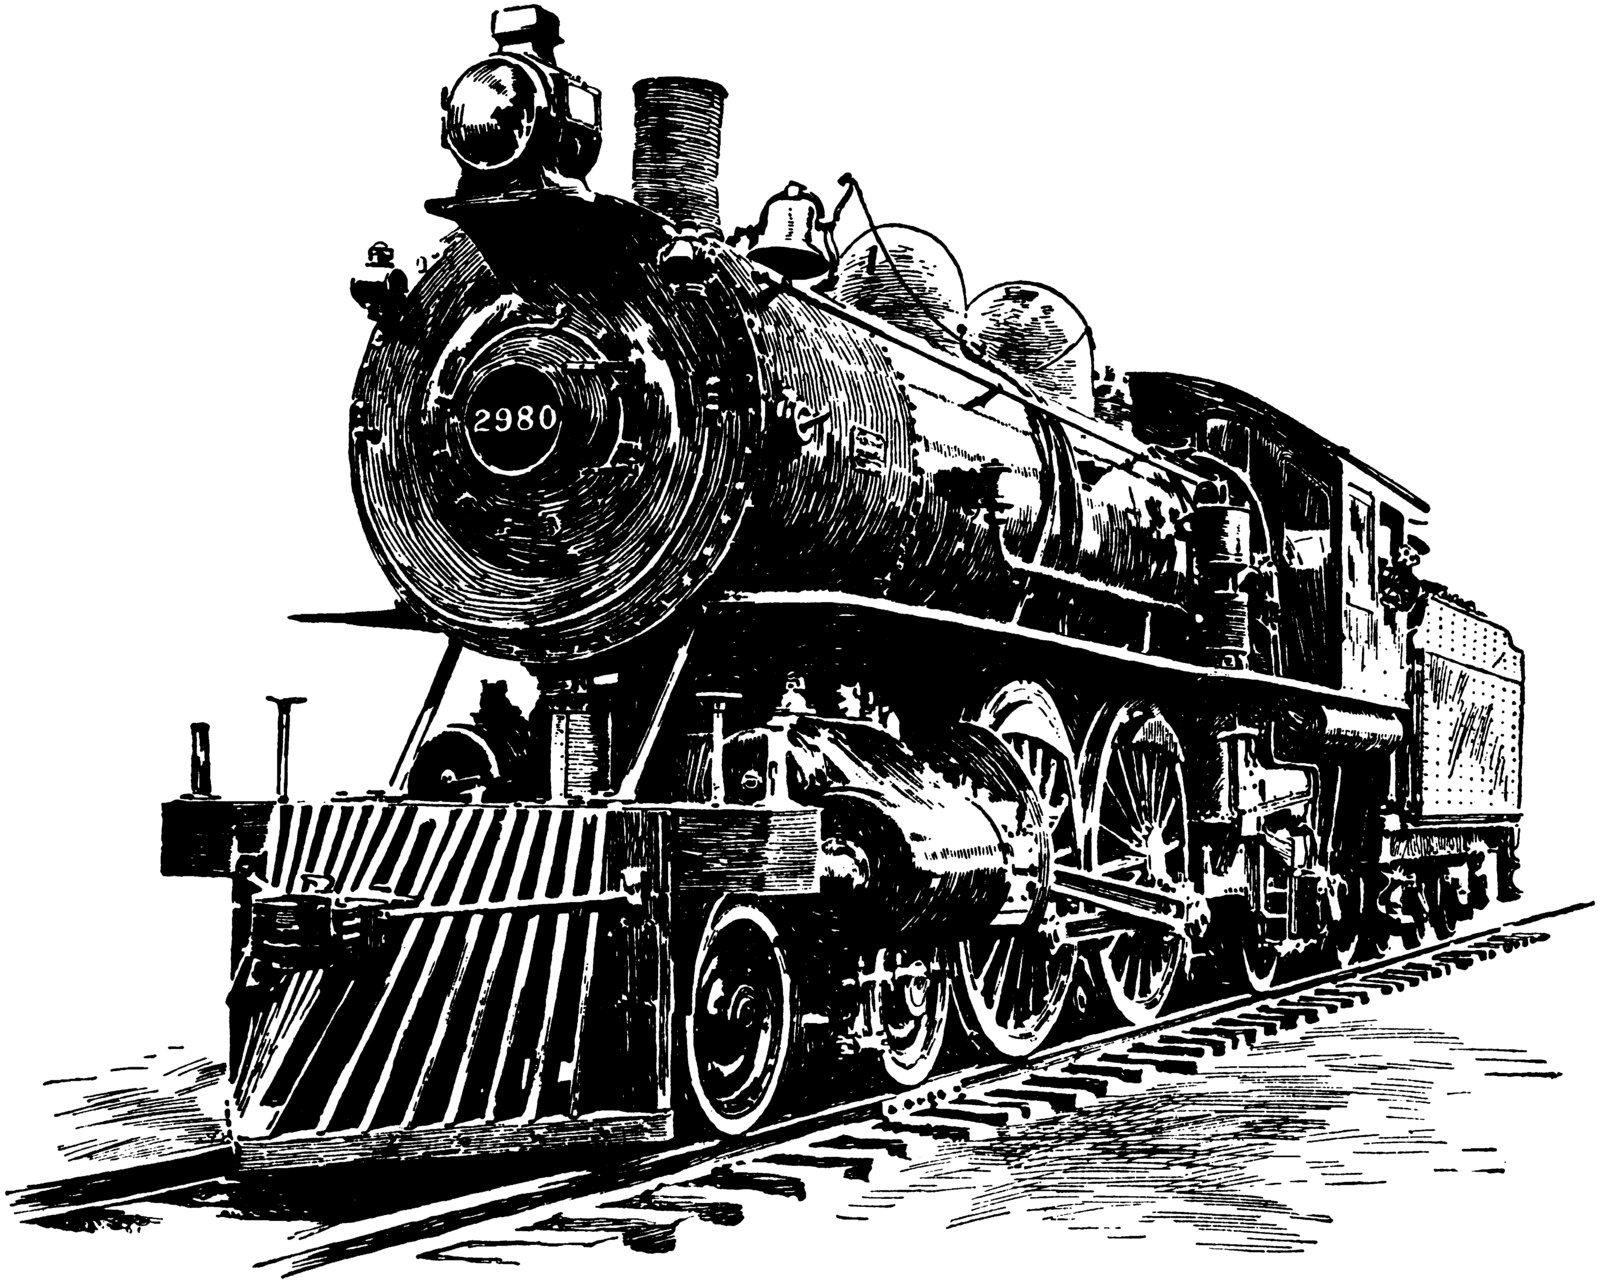 Steampunk steam locomotive line art stock by IHCOYC on DeviantArt.